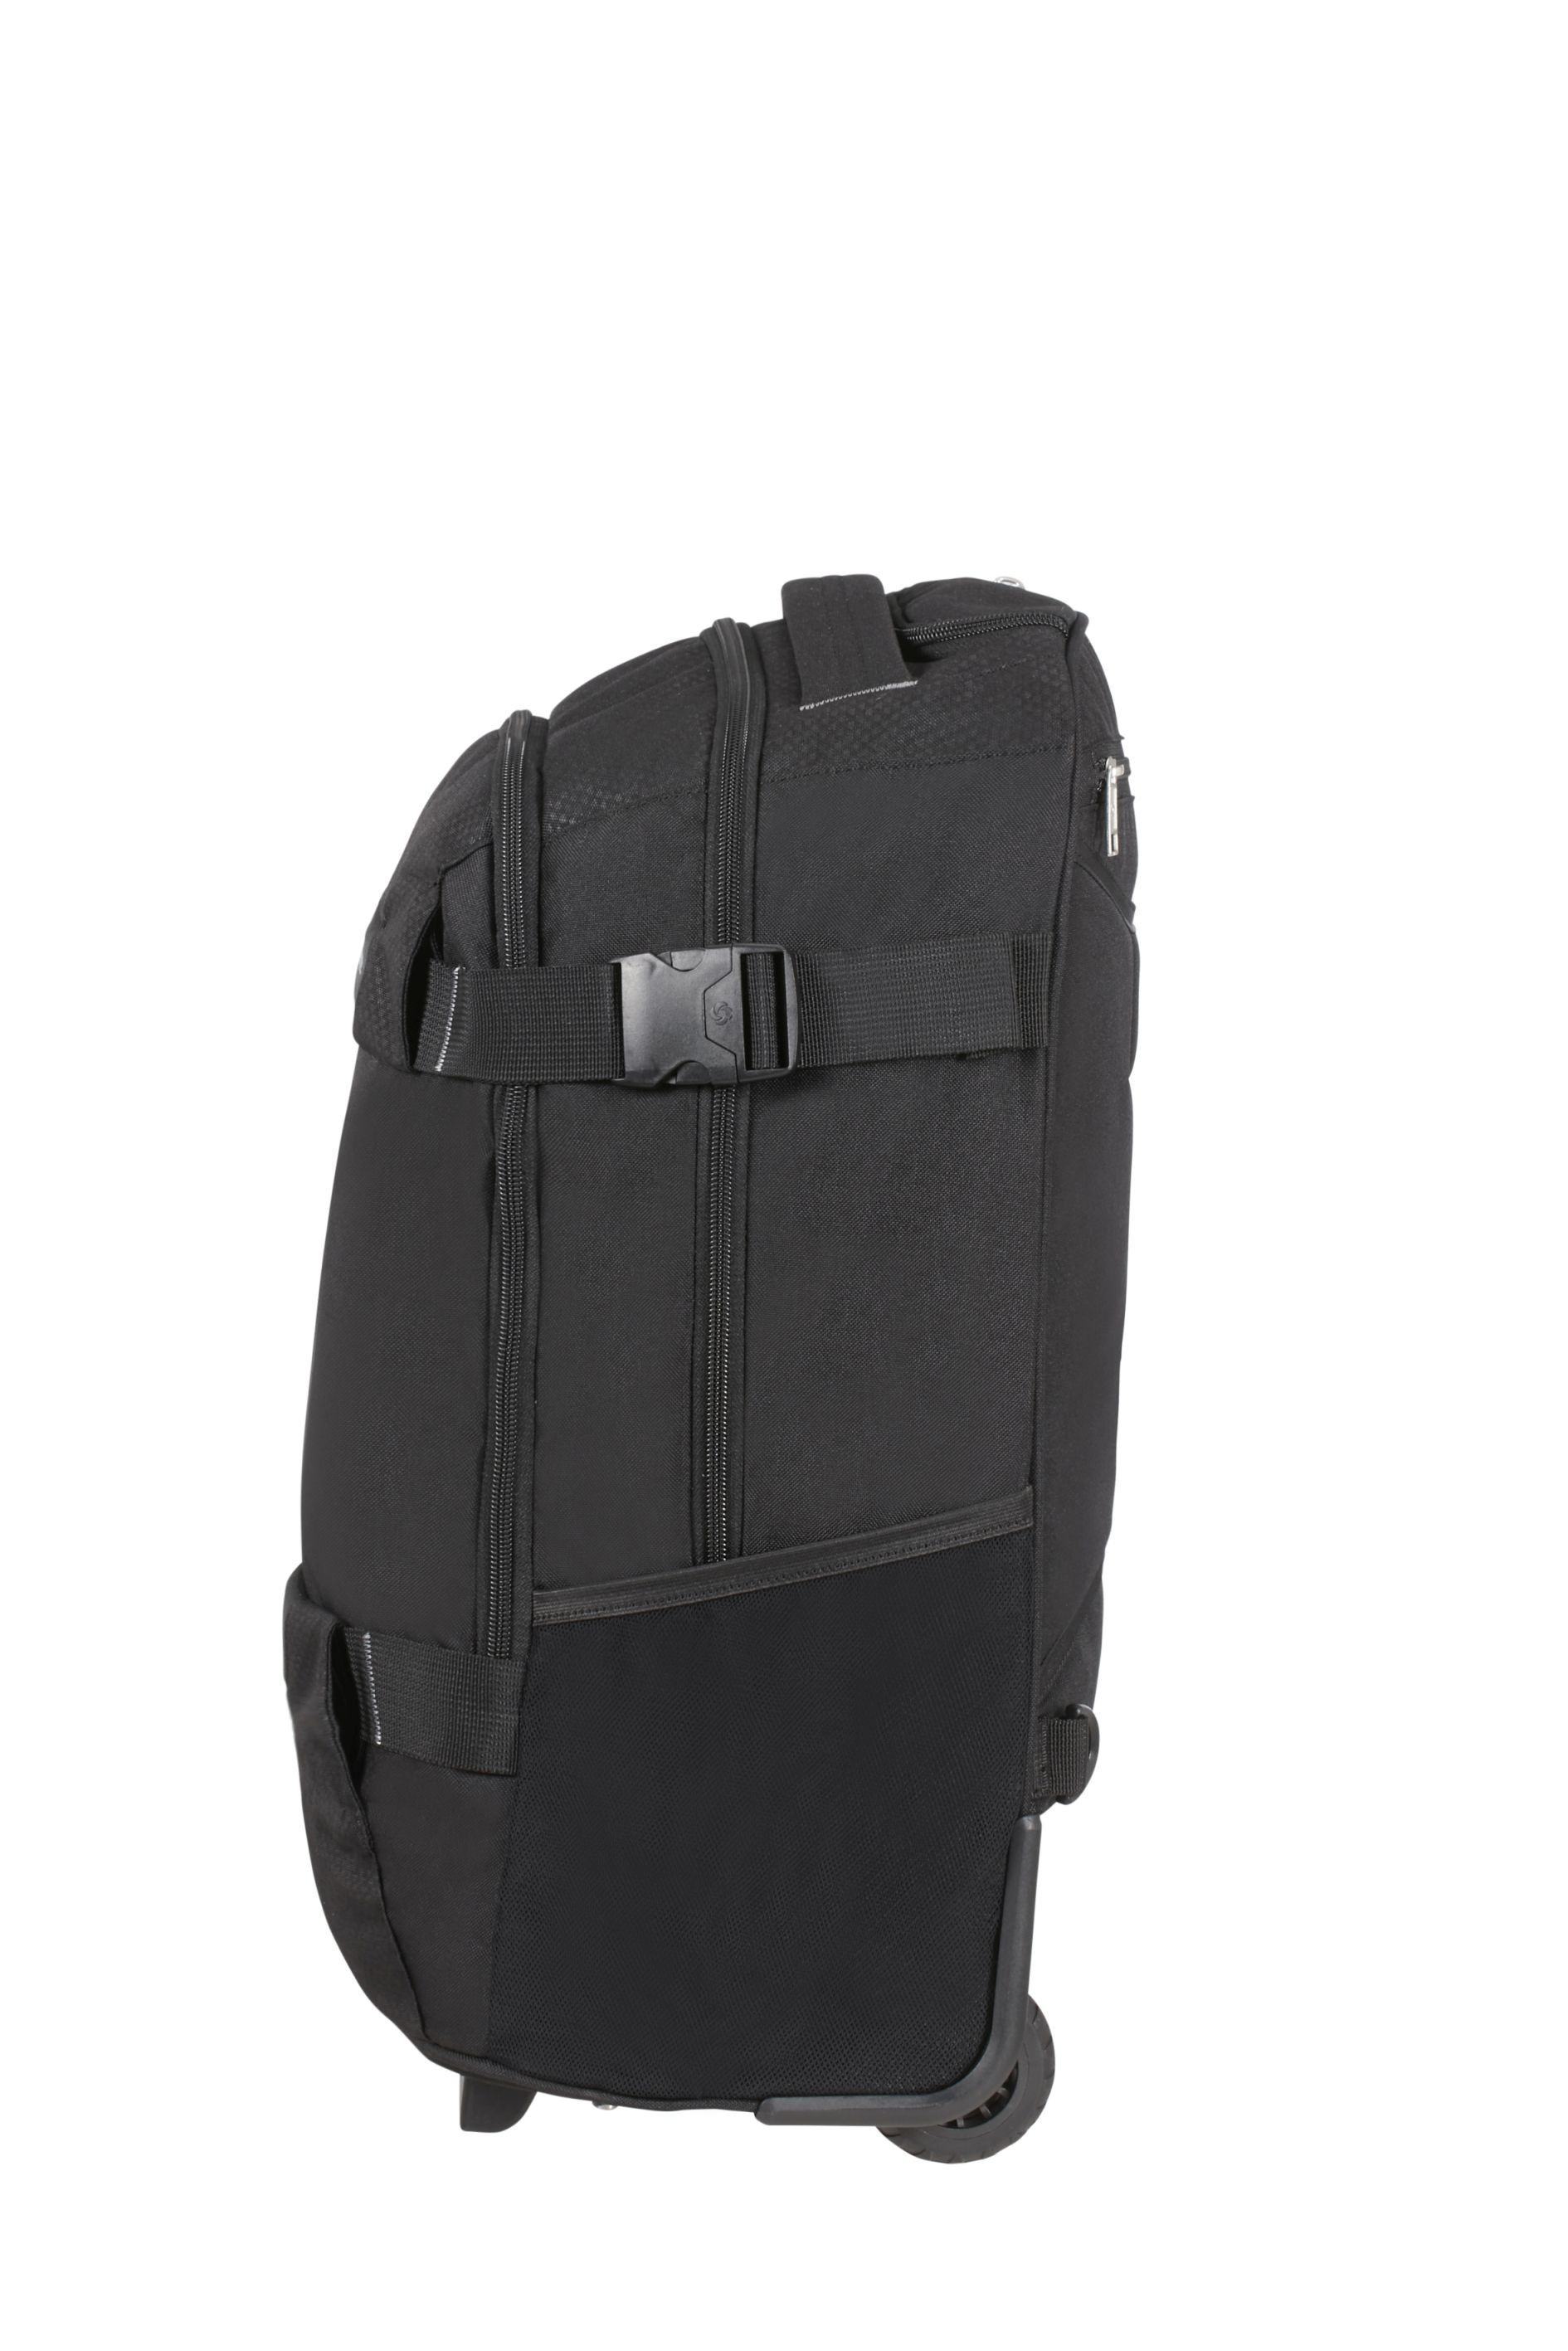 Samsonite Sonora Laptop Backpack/wh 55, View 6